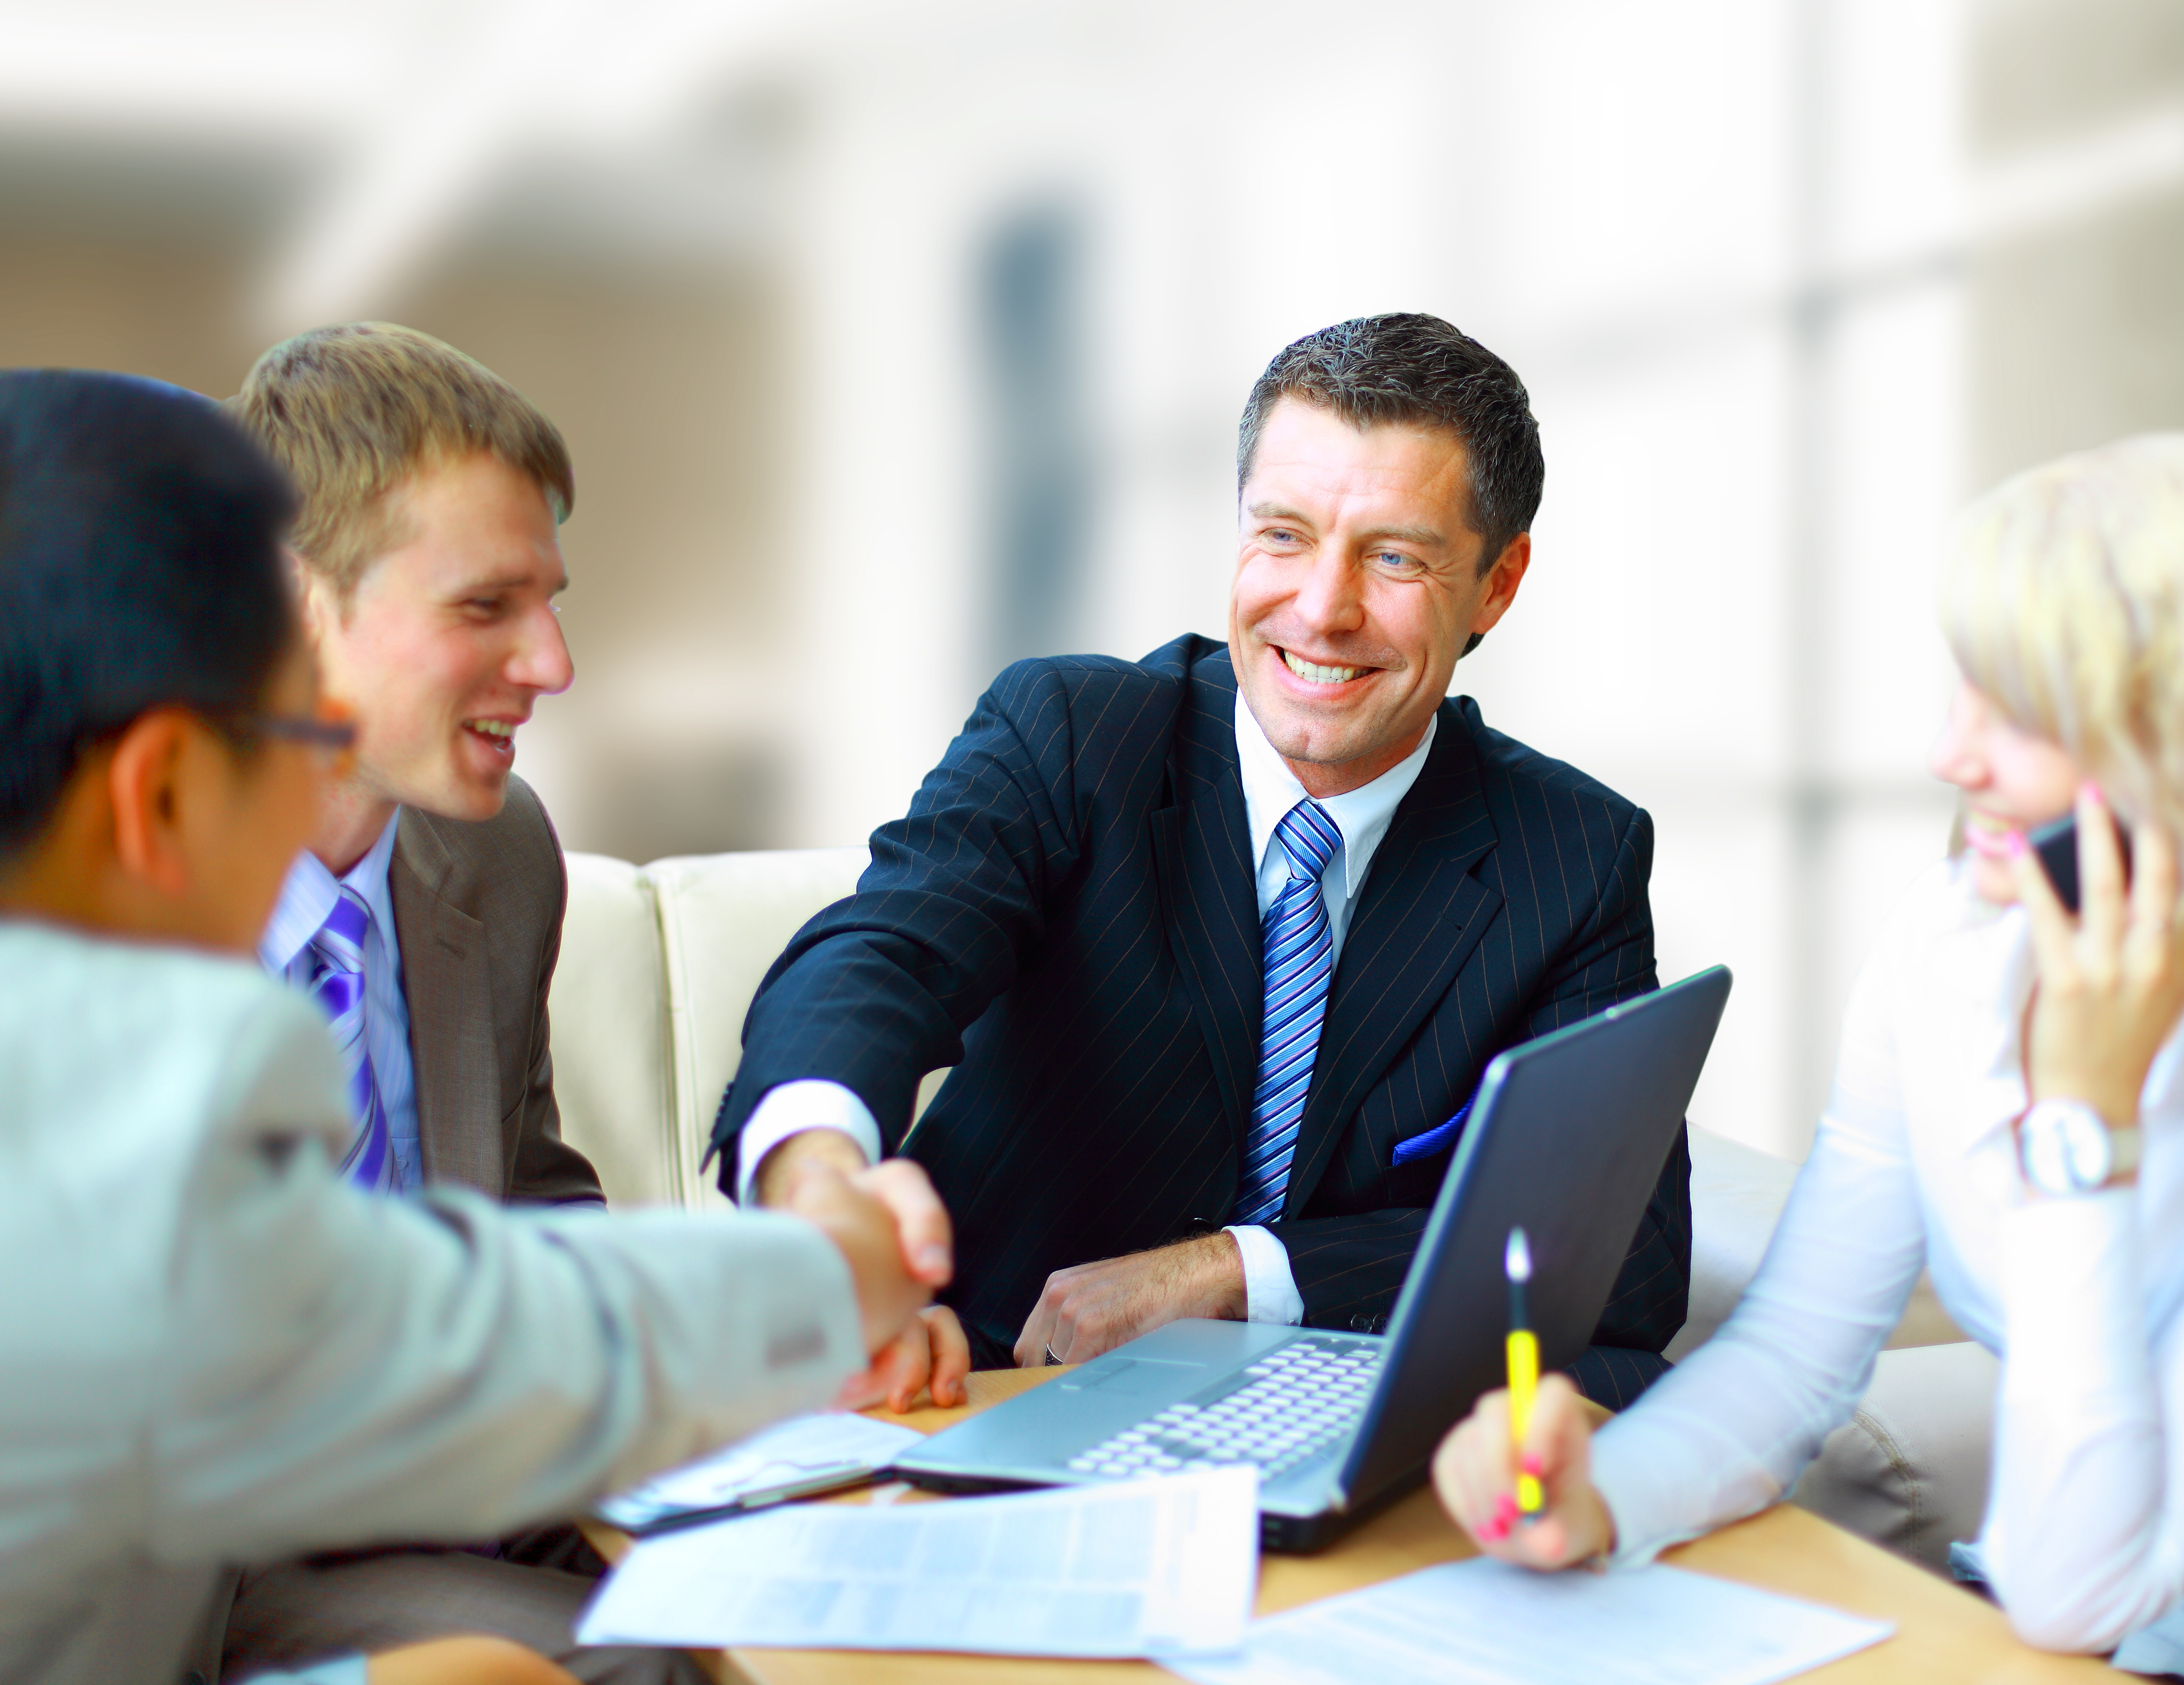 4019984 Business Meeting Wallpaper Loans Institution